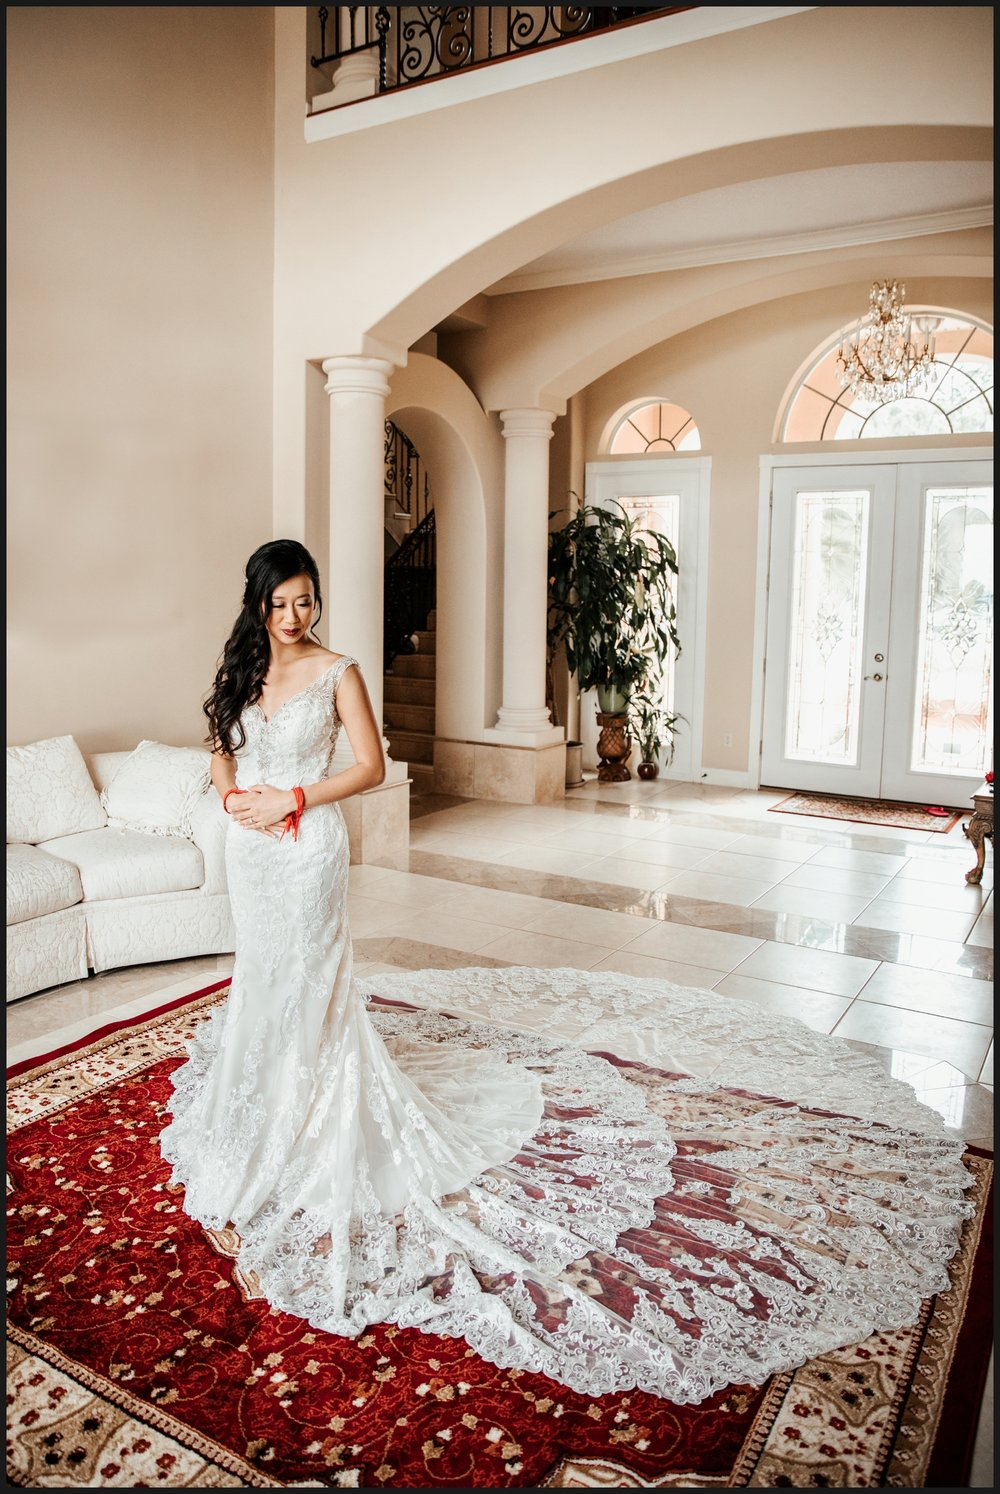 Orlando-Wedding-Photographer-destination-wedding-photographer-florida-wedding-photographer-bohemian-wedding-photographer_1403.jpg